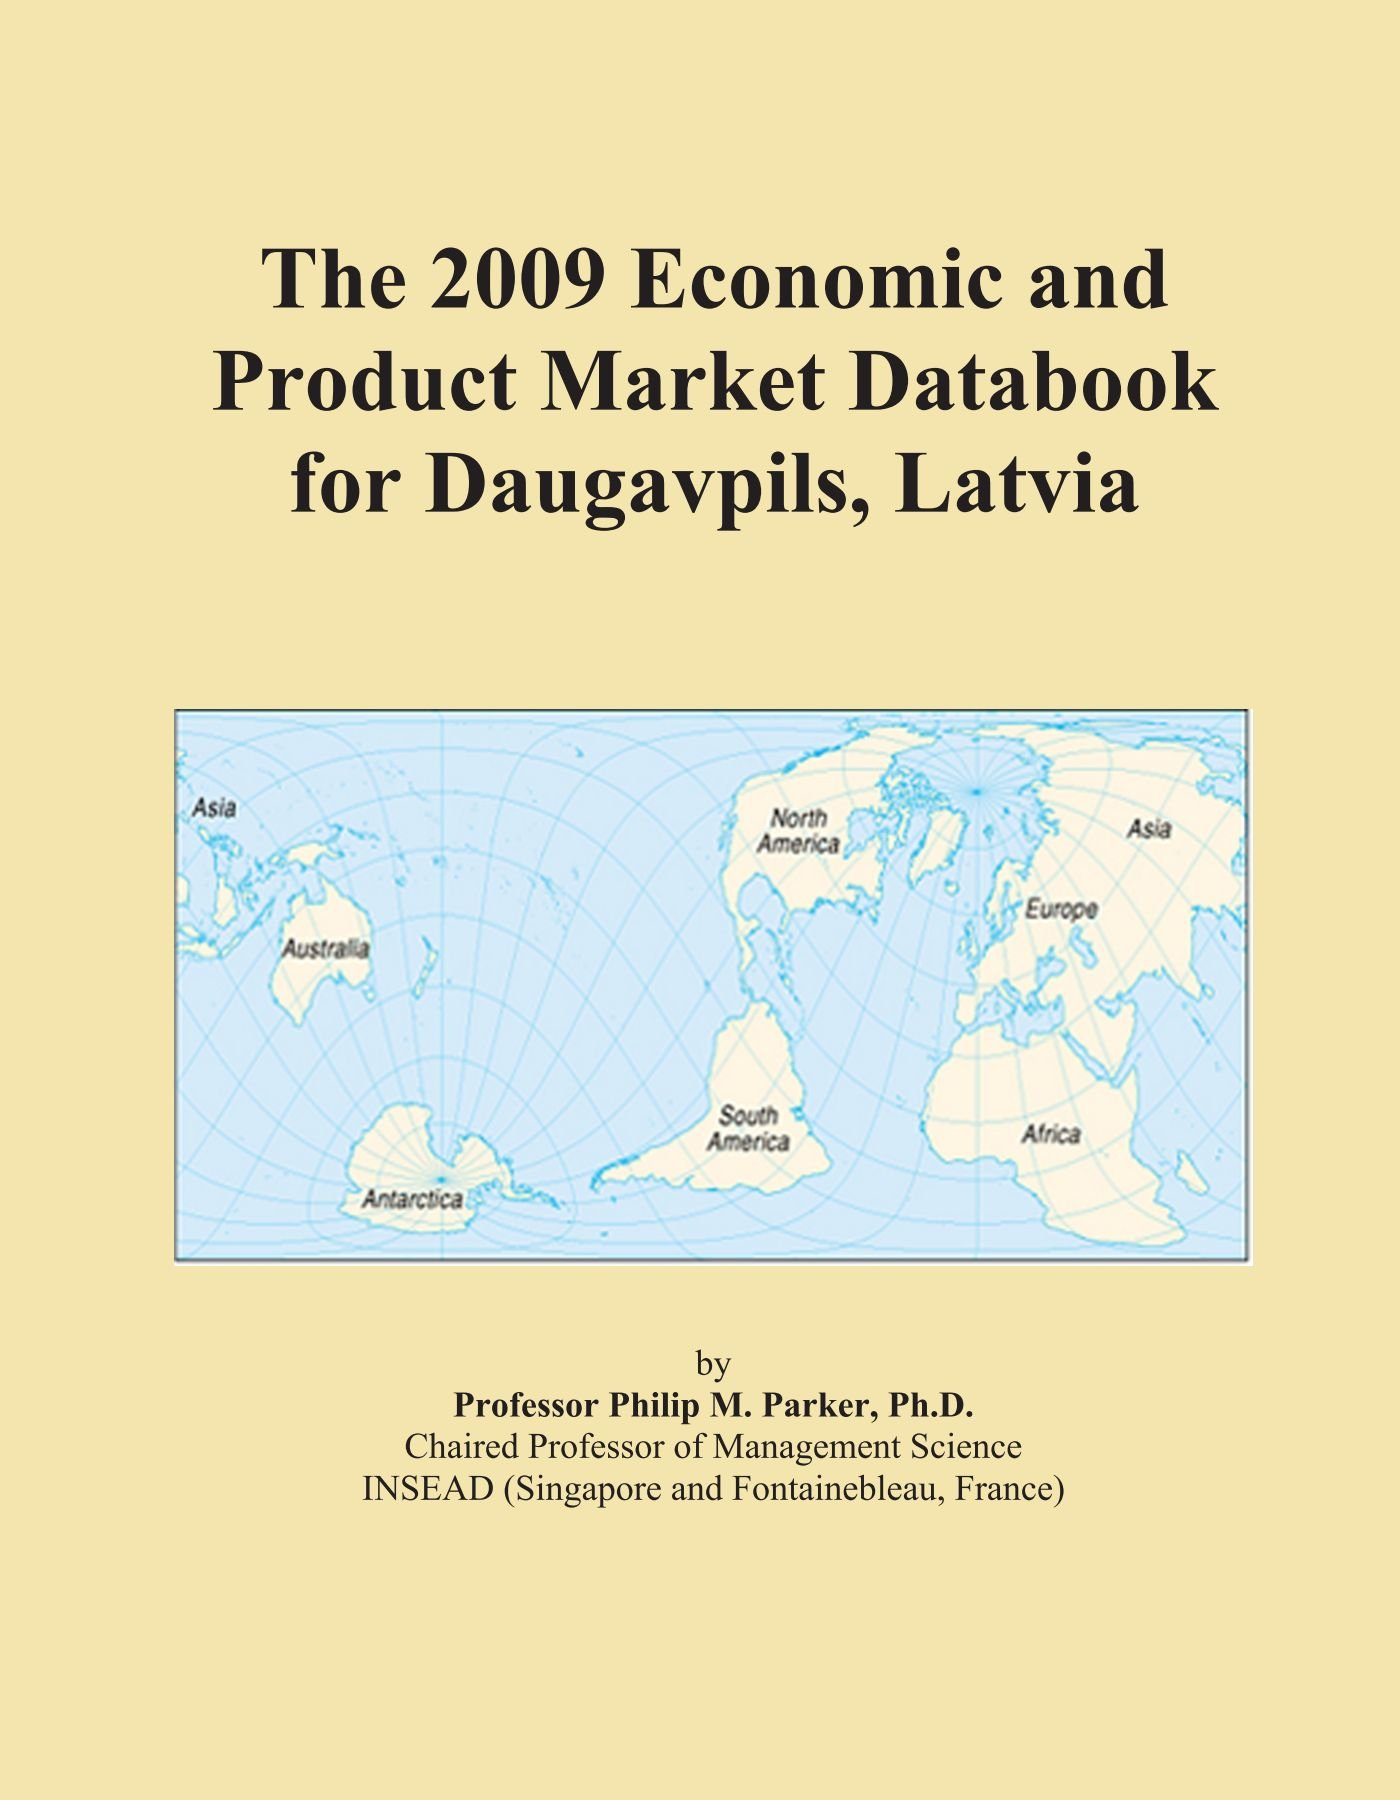 The 2009 Economic and Product Market Databook for Daugavpils, Latvia PDF